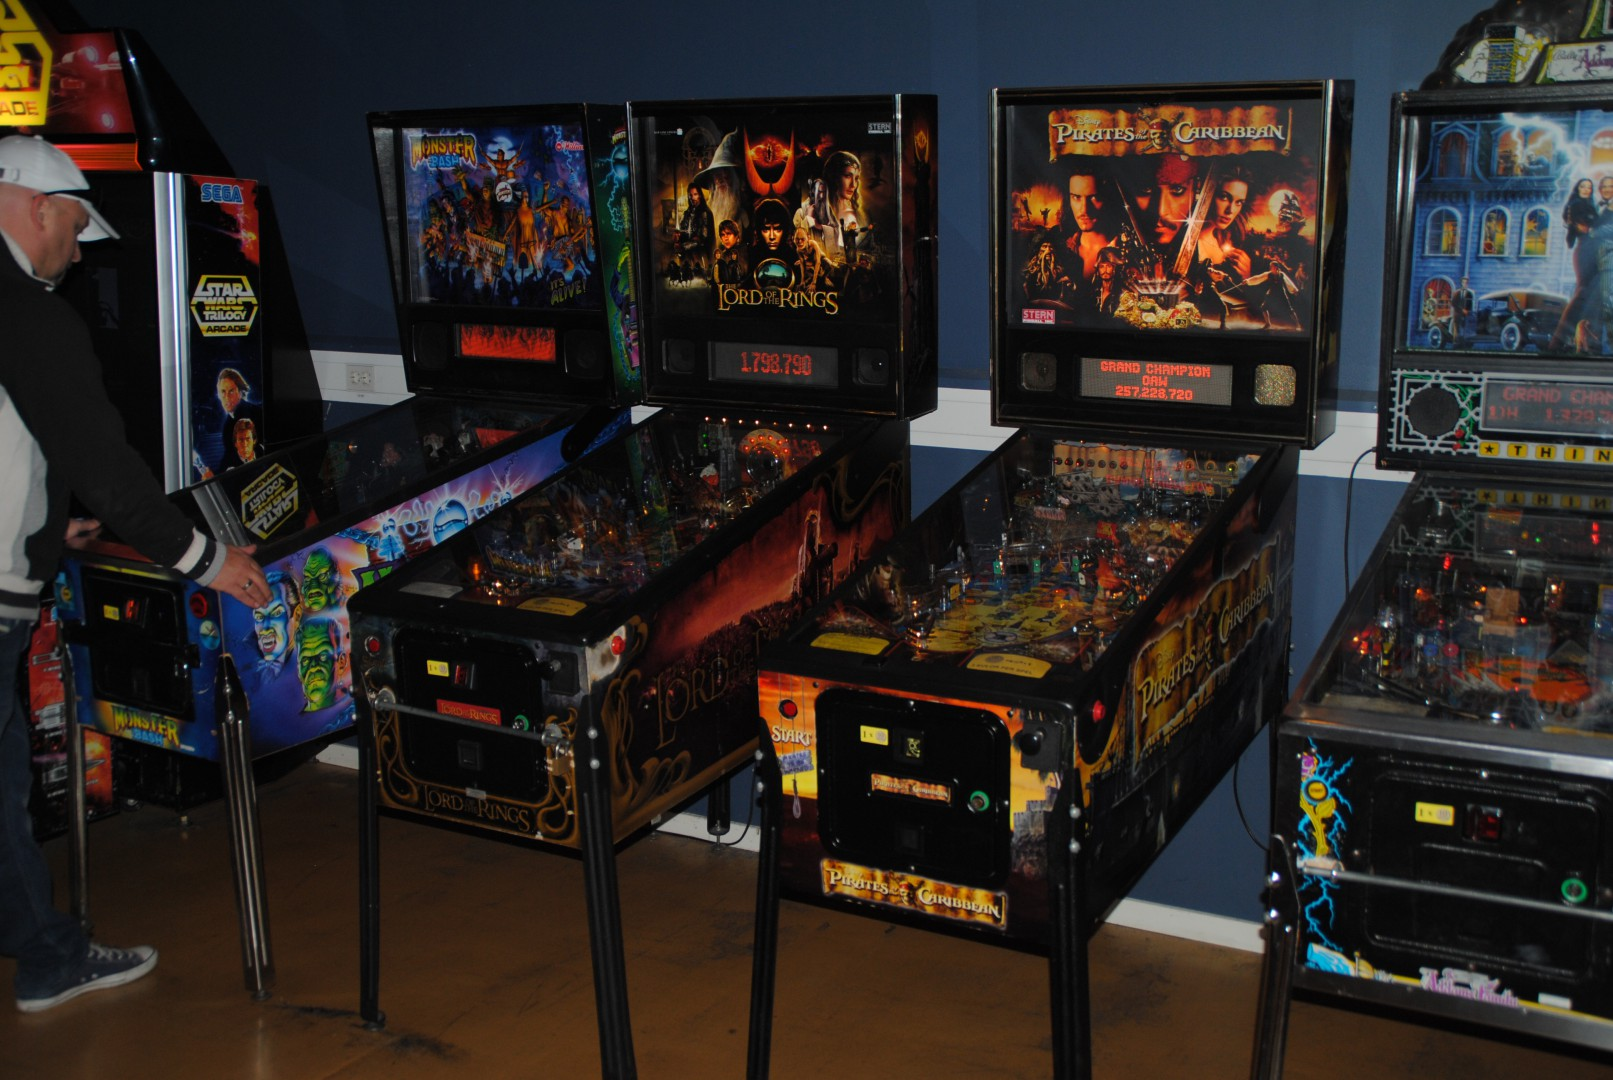 Monster bashm Lord Of The Rings , Pirates Of The Caribbean and Addams Family Pinball games / At Liseberg Fun Fair